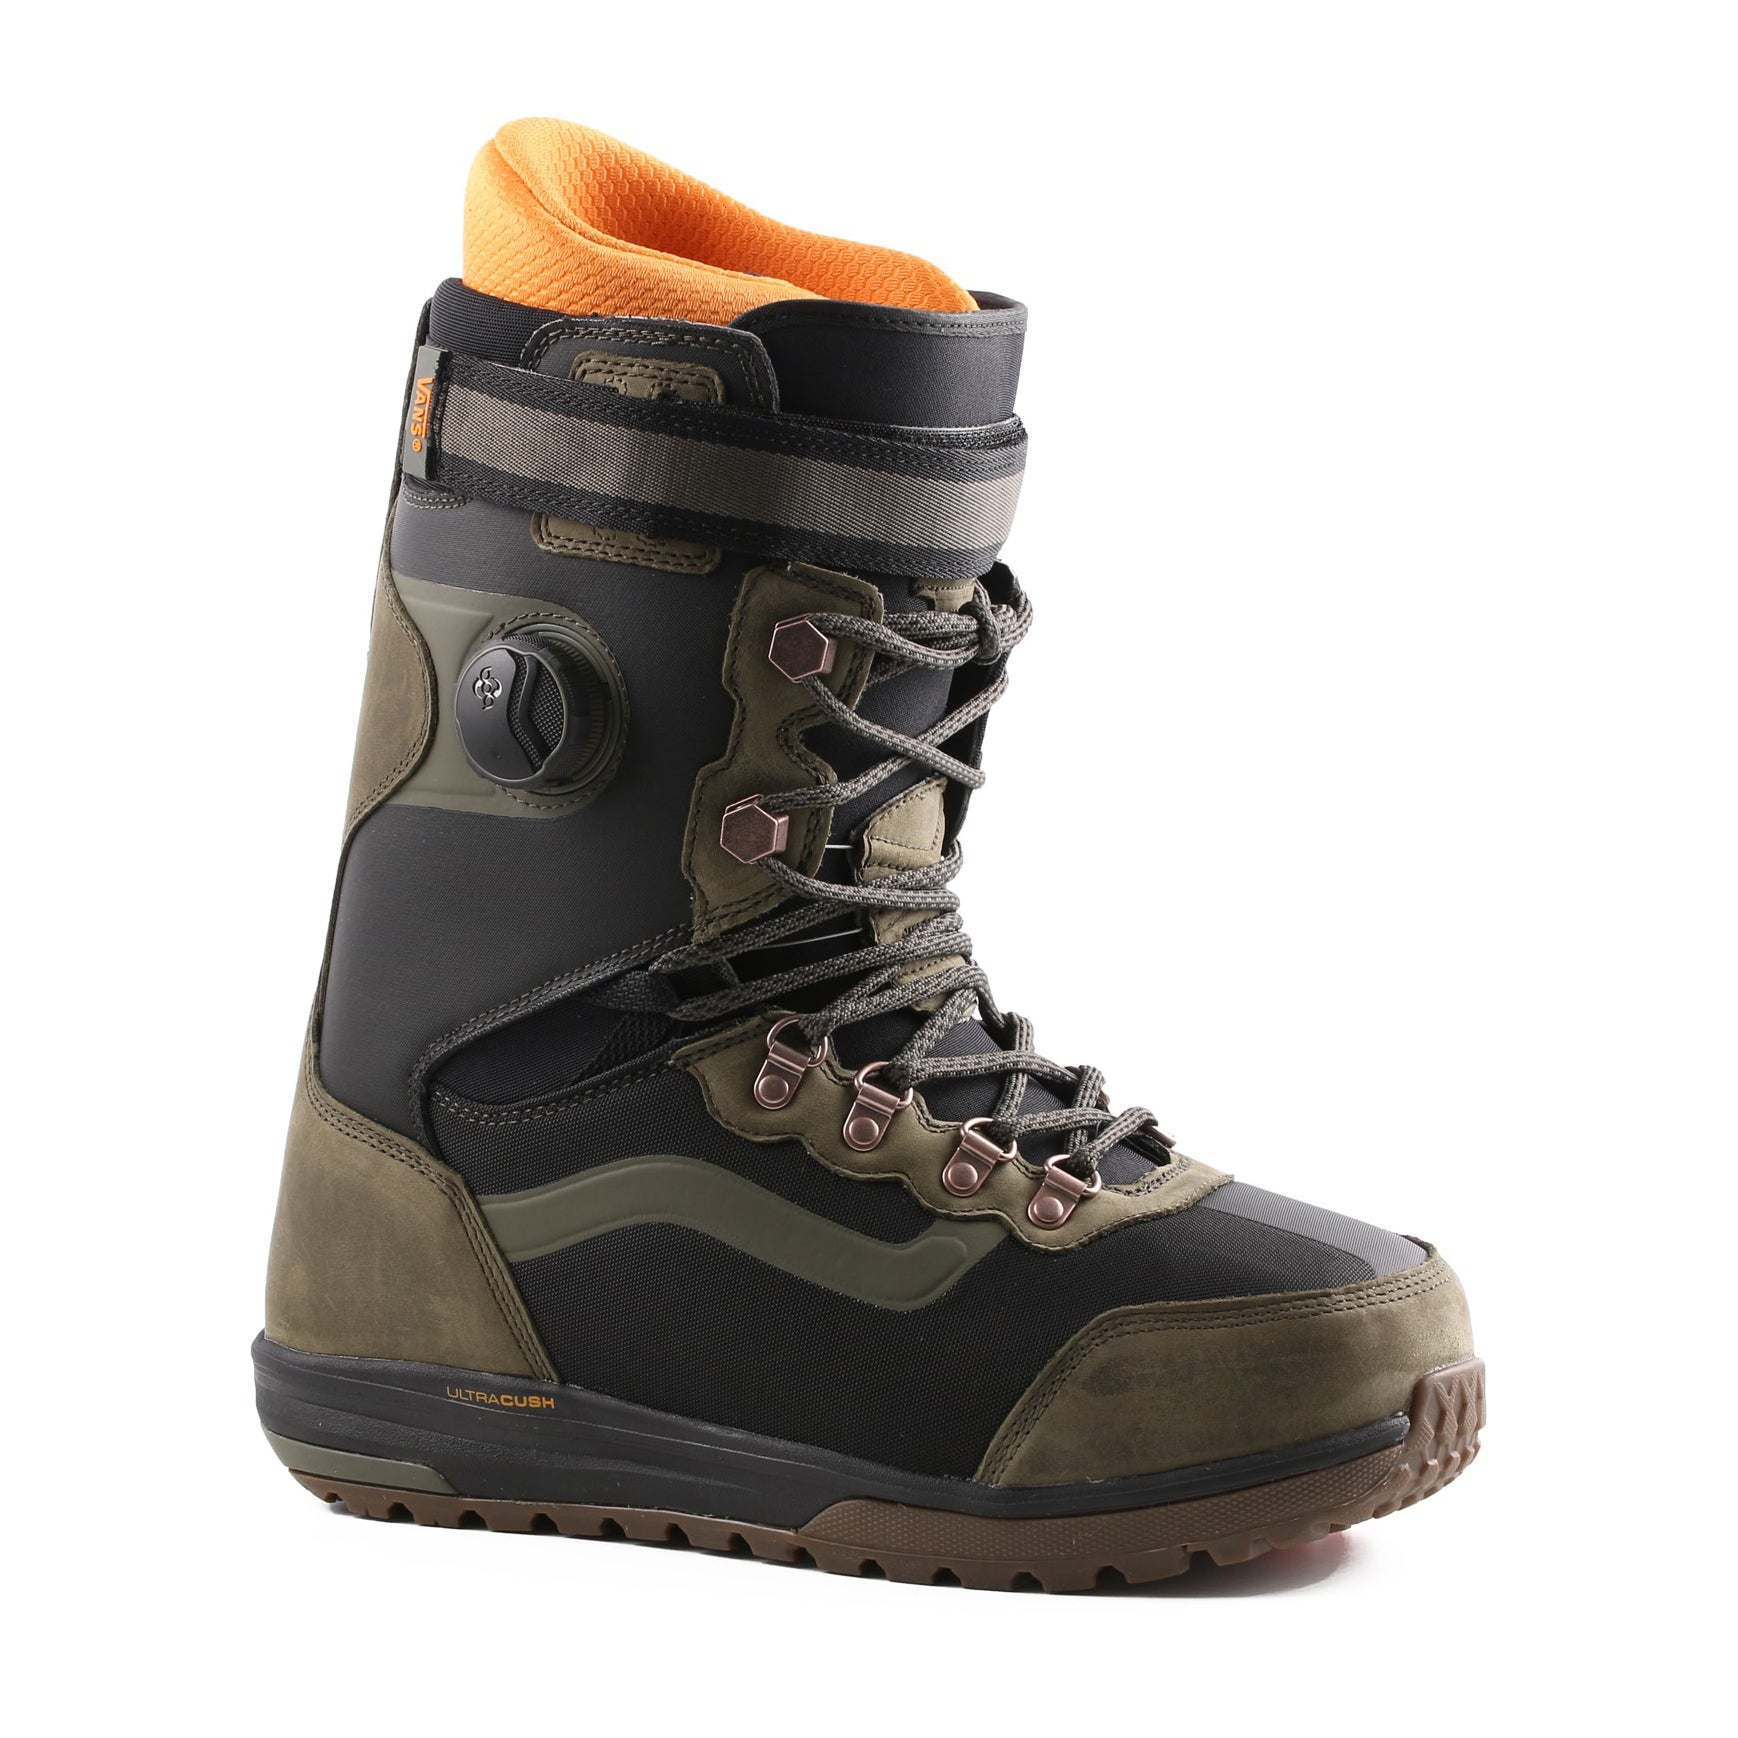 5966abfbb773 Vans Infuse 2018 Snowboard Boots available from Surfdome